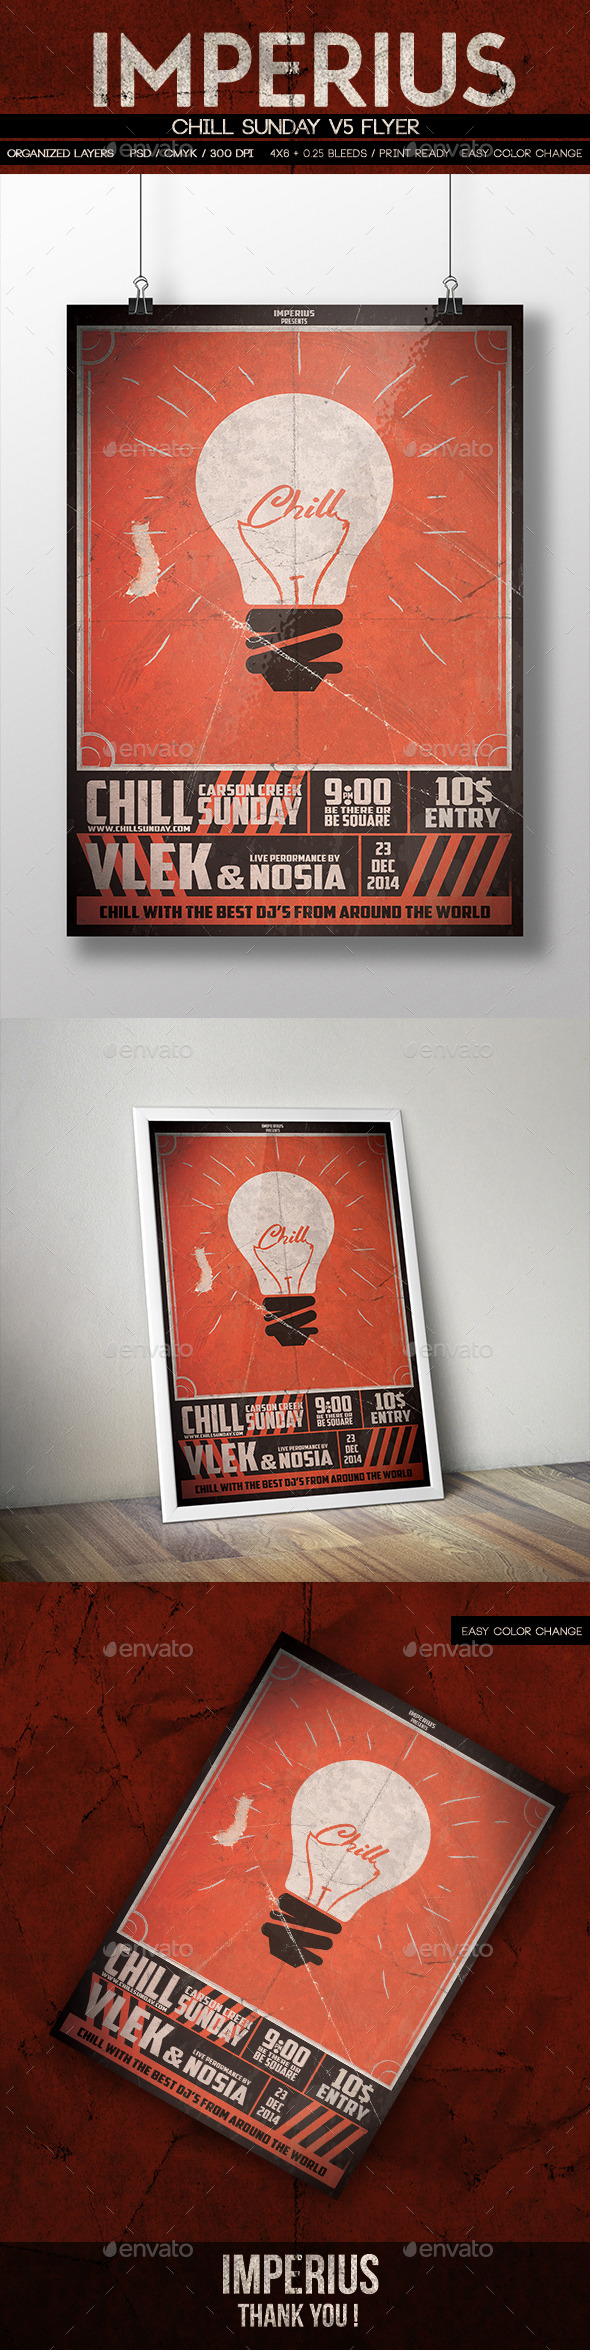 GraphicRiver Chill Sunday V5 9788584